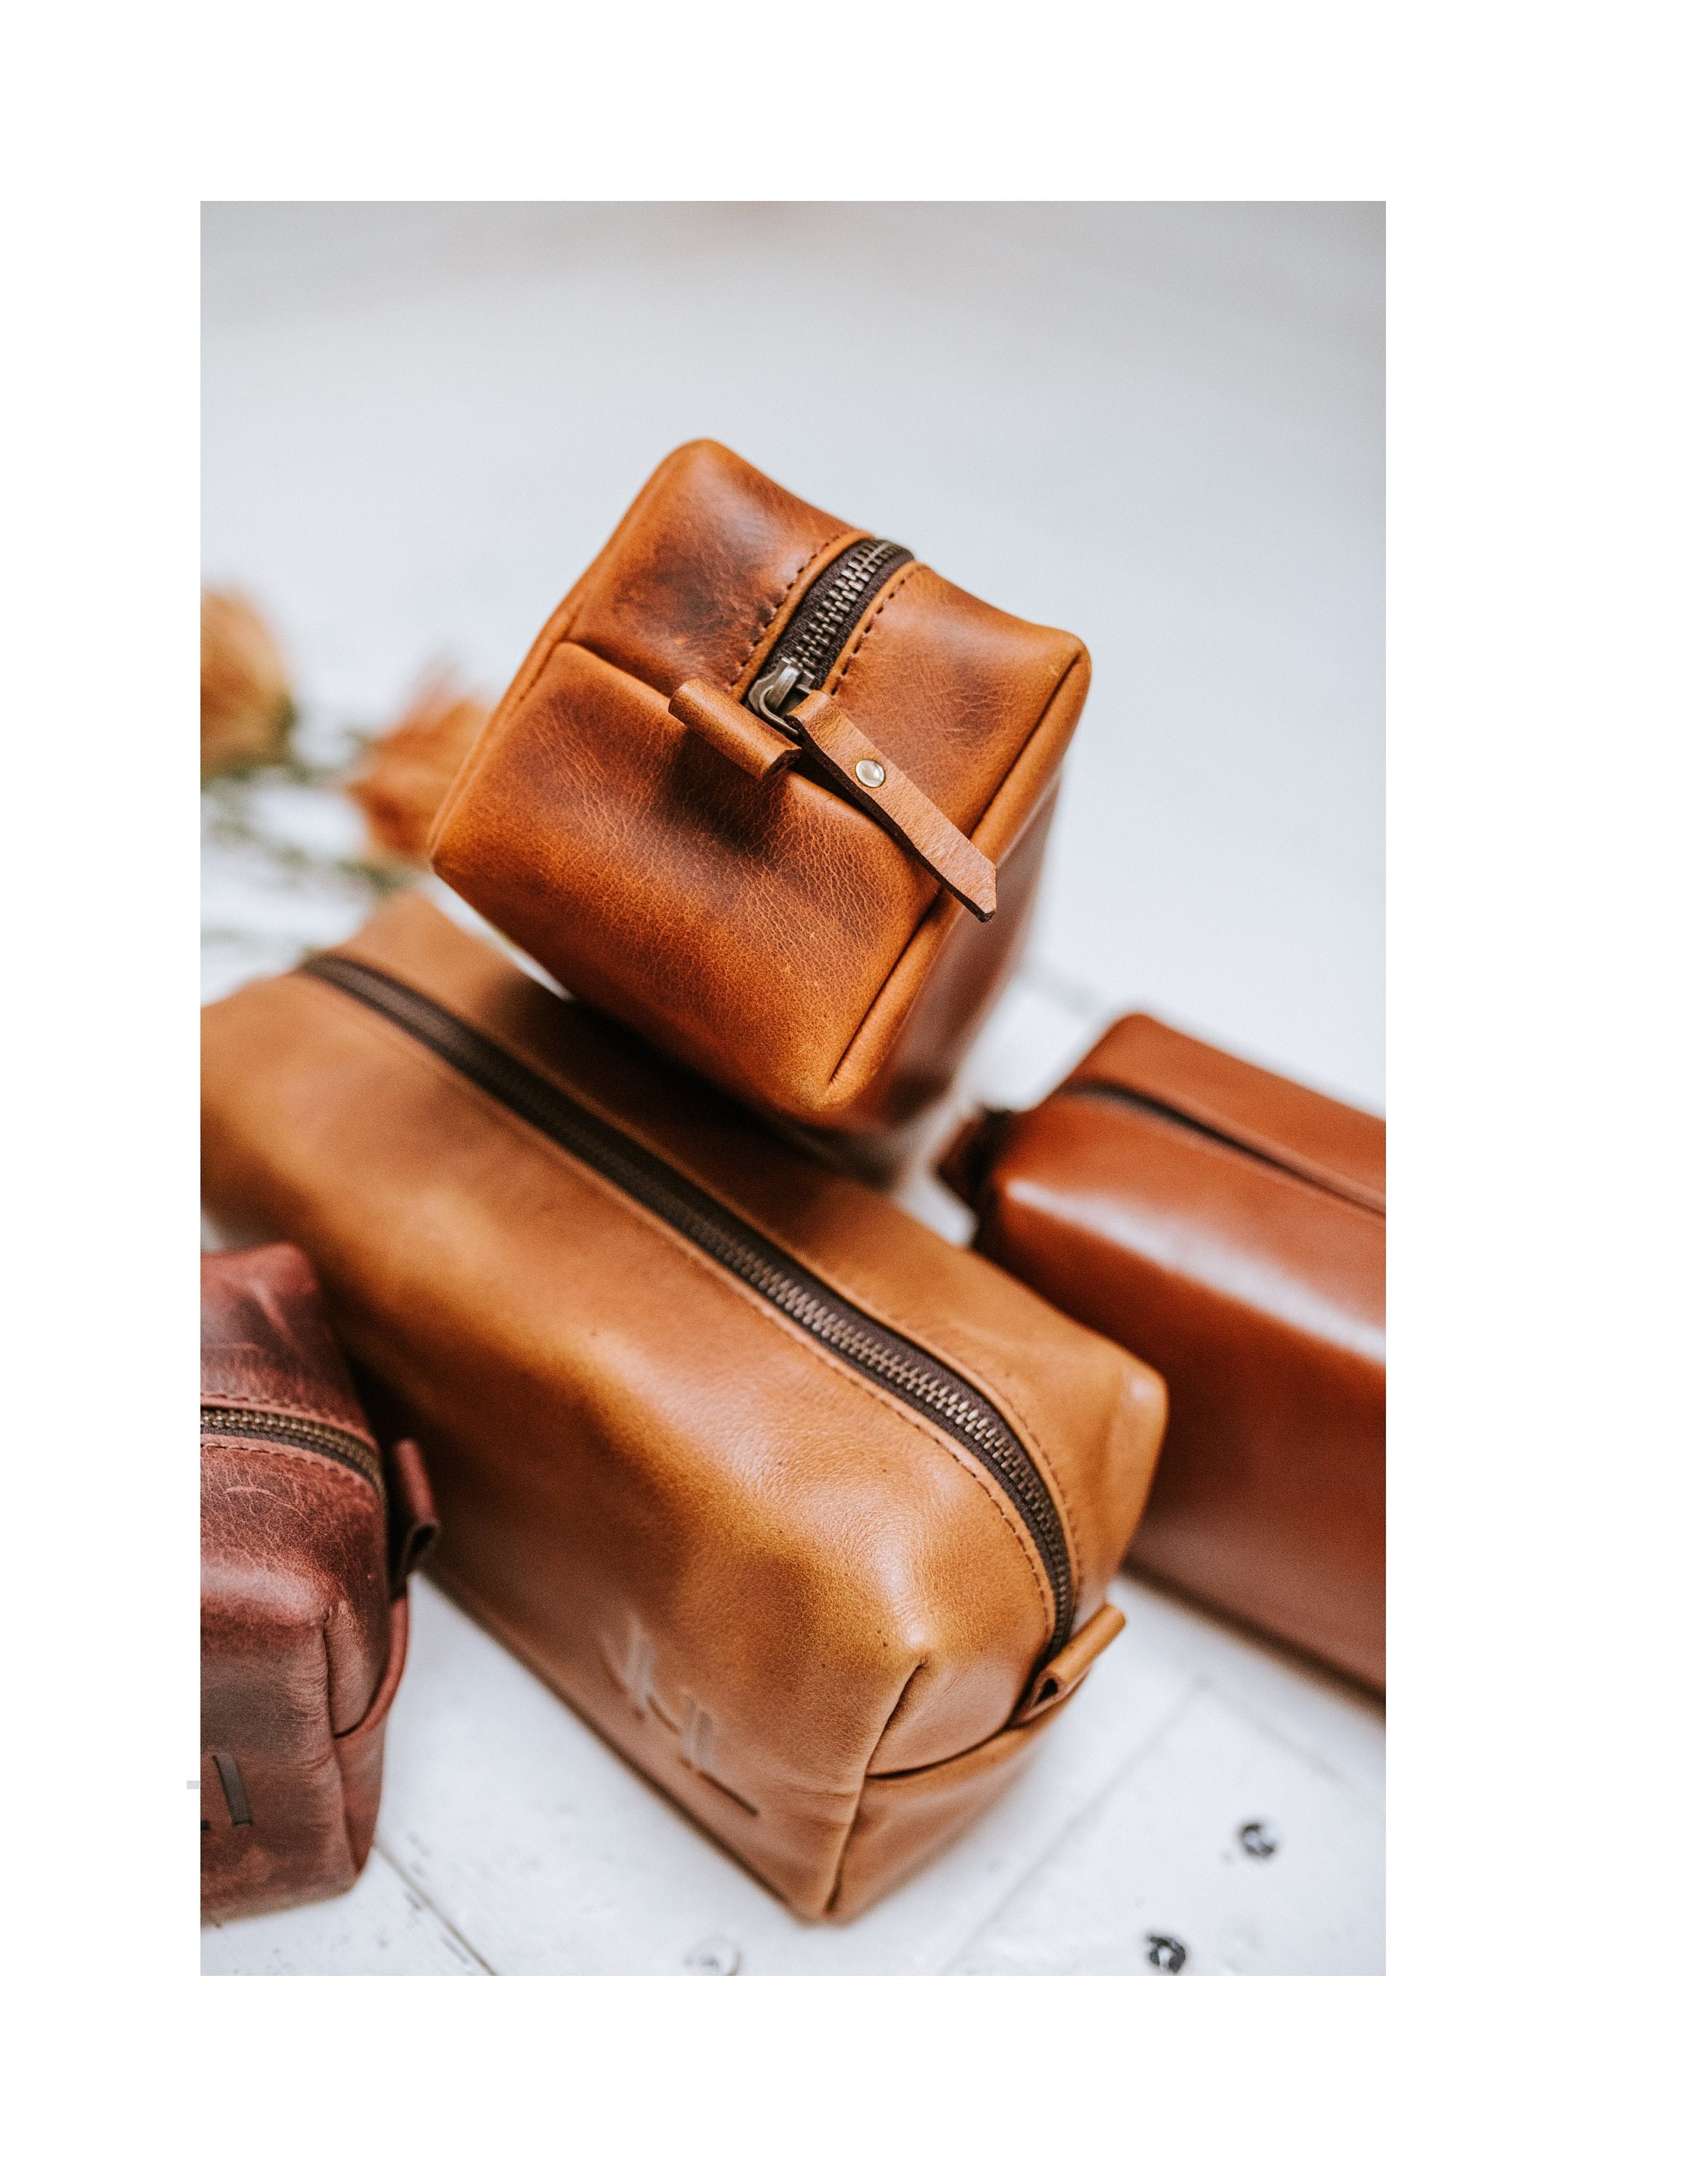 97c572639b63 Leather Dopp Kit Valentine s Gift Groomsmen Gift Customize Leather Toiletry  Bag Men s Leather Third Anniversary Gift Leather Gift